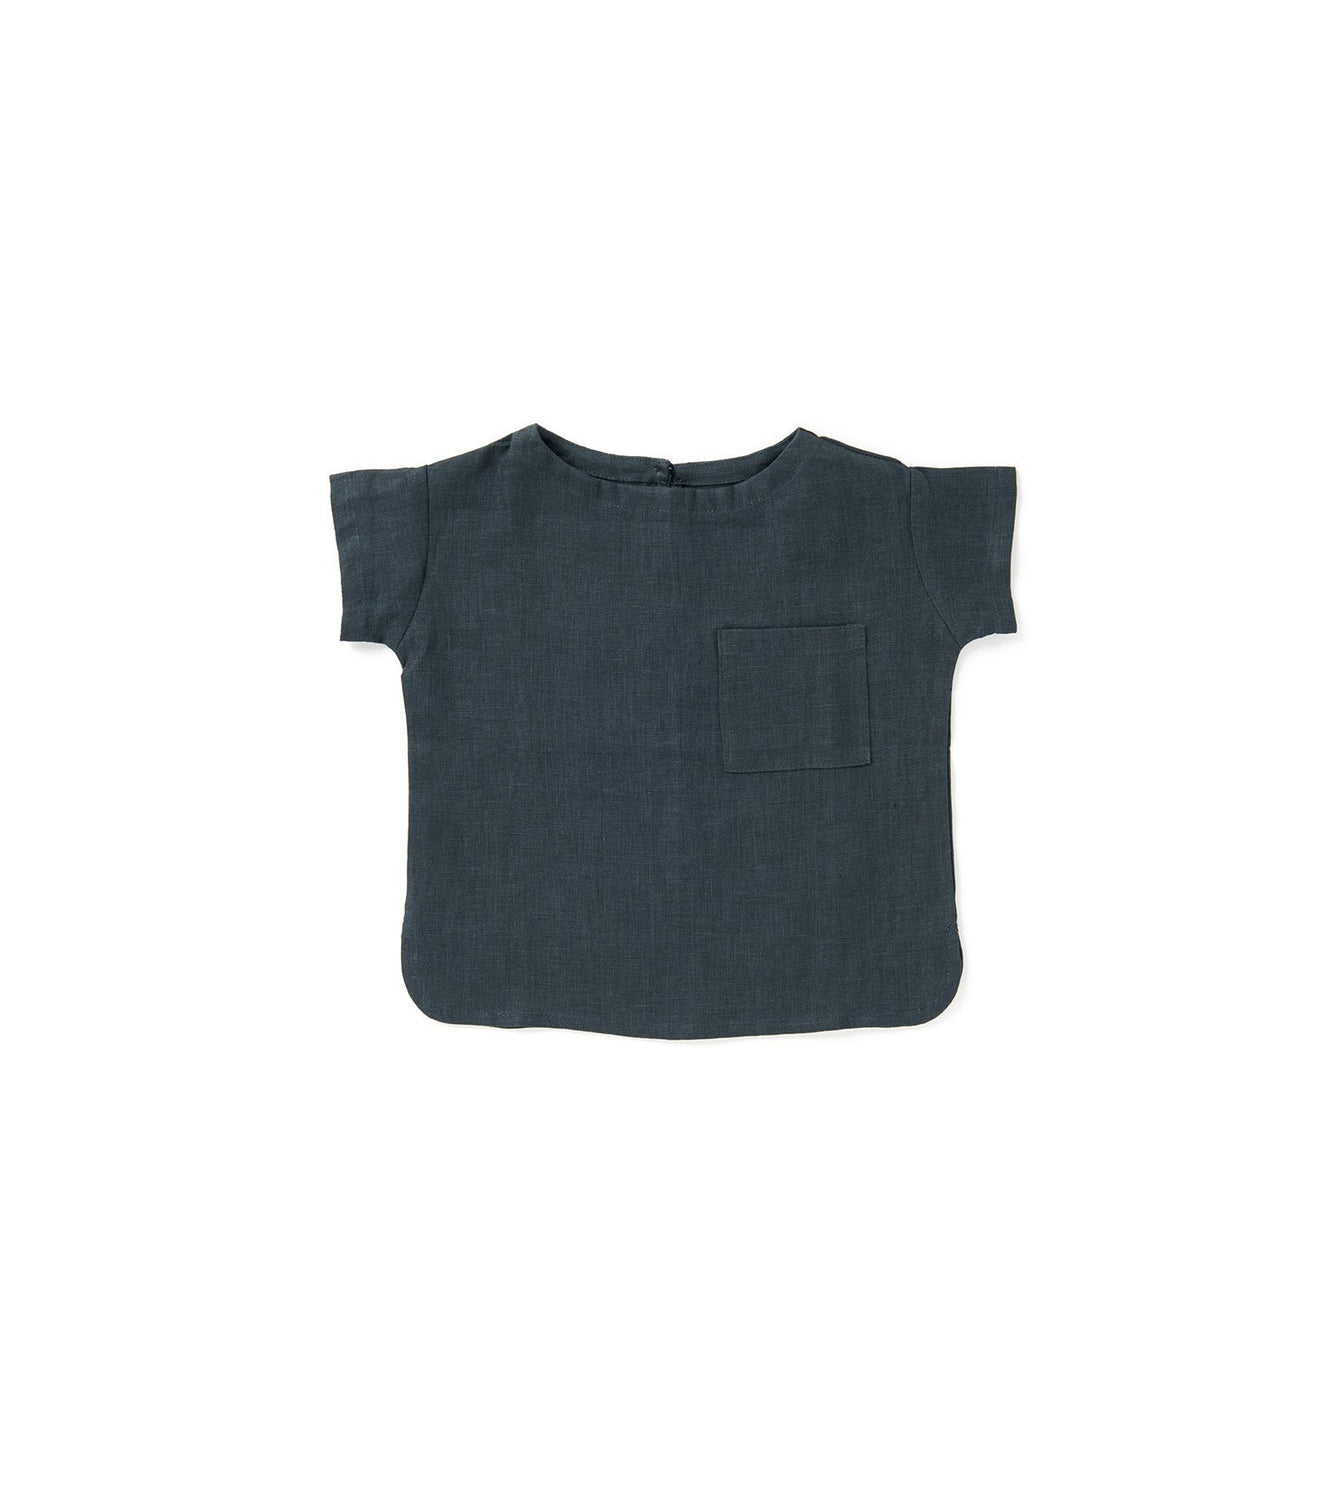 Linen kids top t-shirt kids clothes